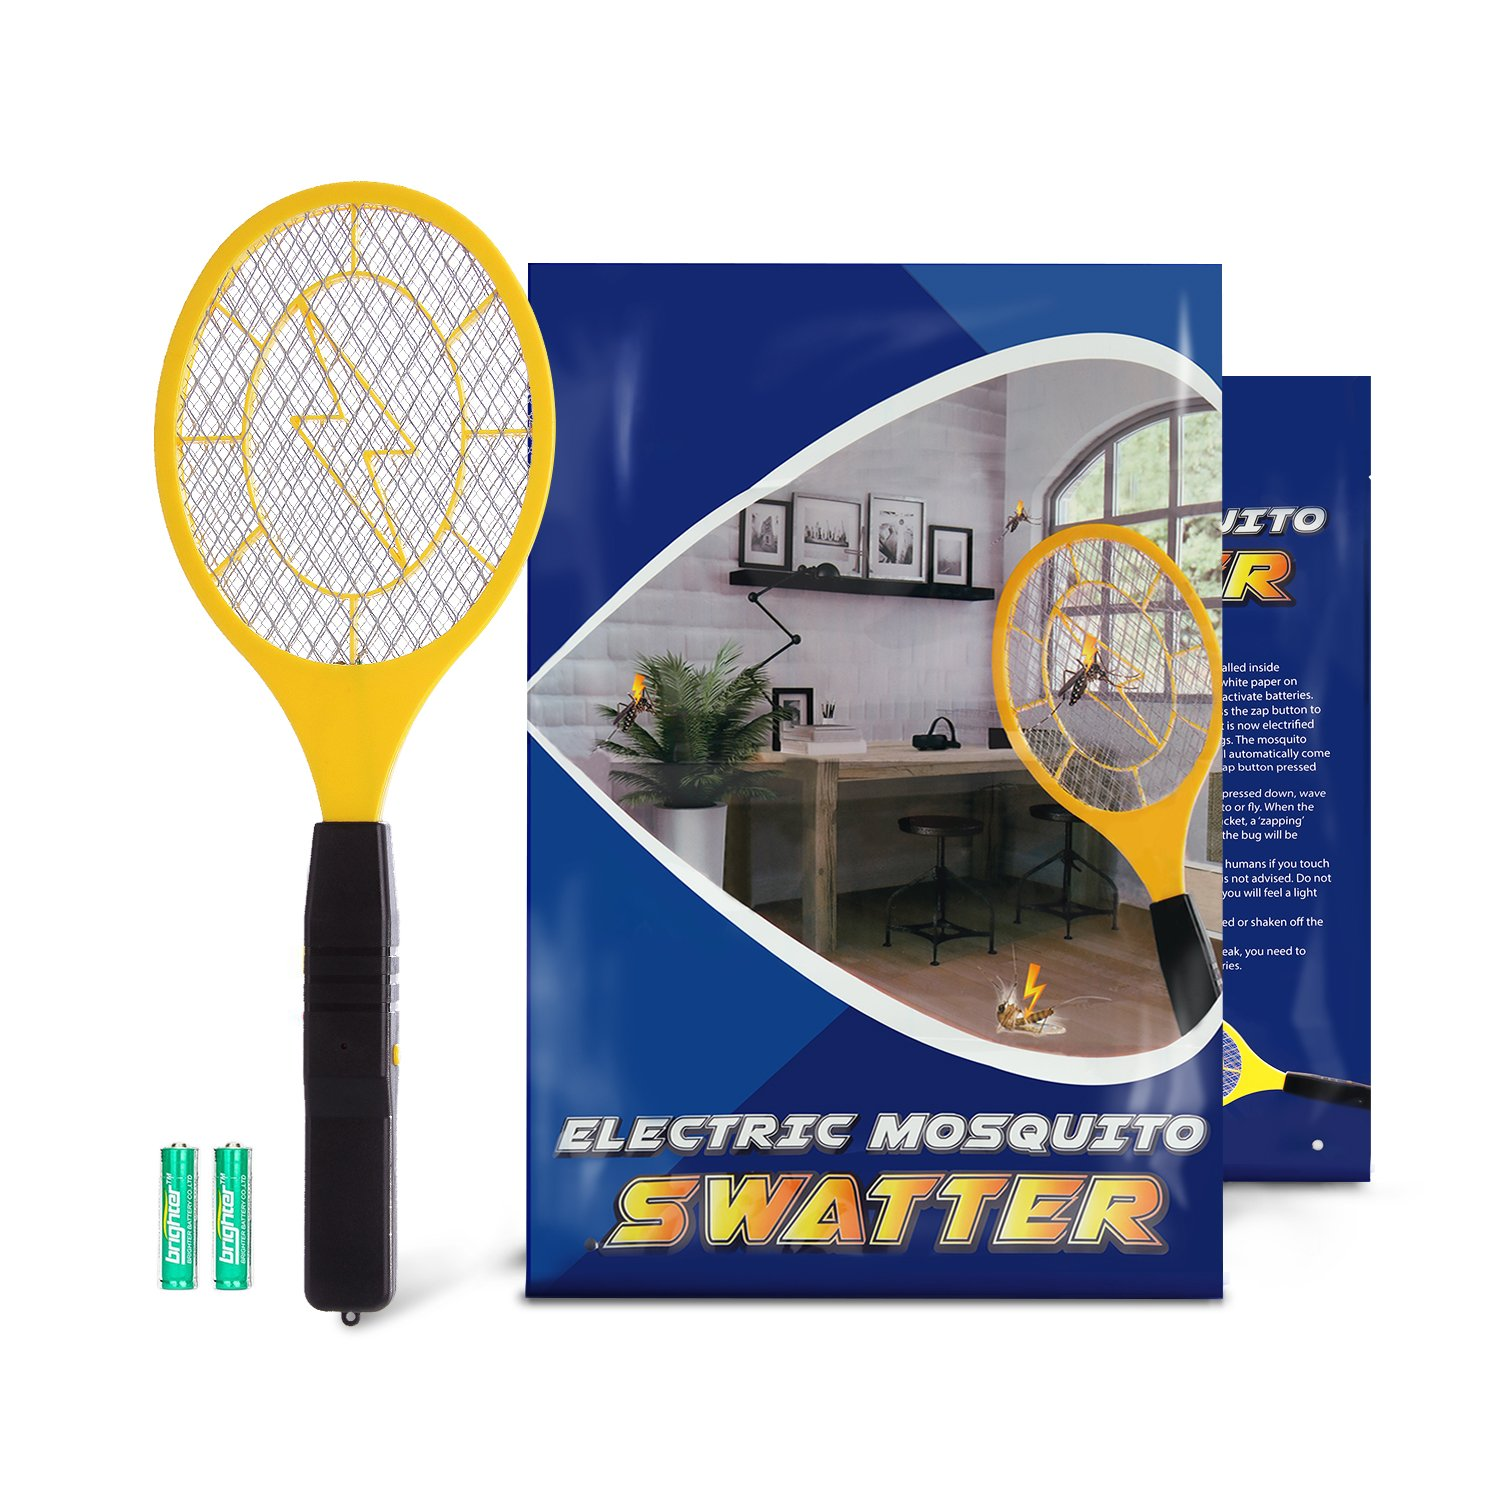 Bug Zapper-Zentouch Electric Fly Swatter Mosquito Zapper against Flies,Bugs,Bees and Other Pest, Suitable for Indoor,Travel, Campings and Outdoor Occasions,Fly Killer with 2 AA Batteries Included